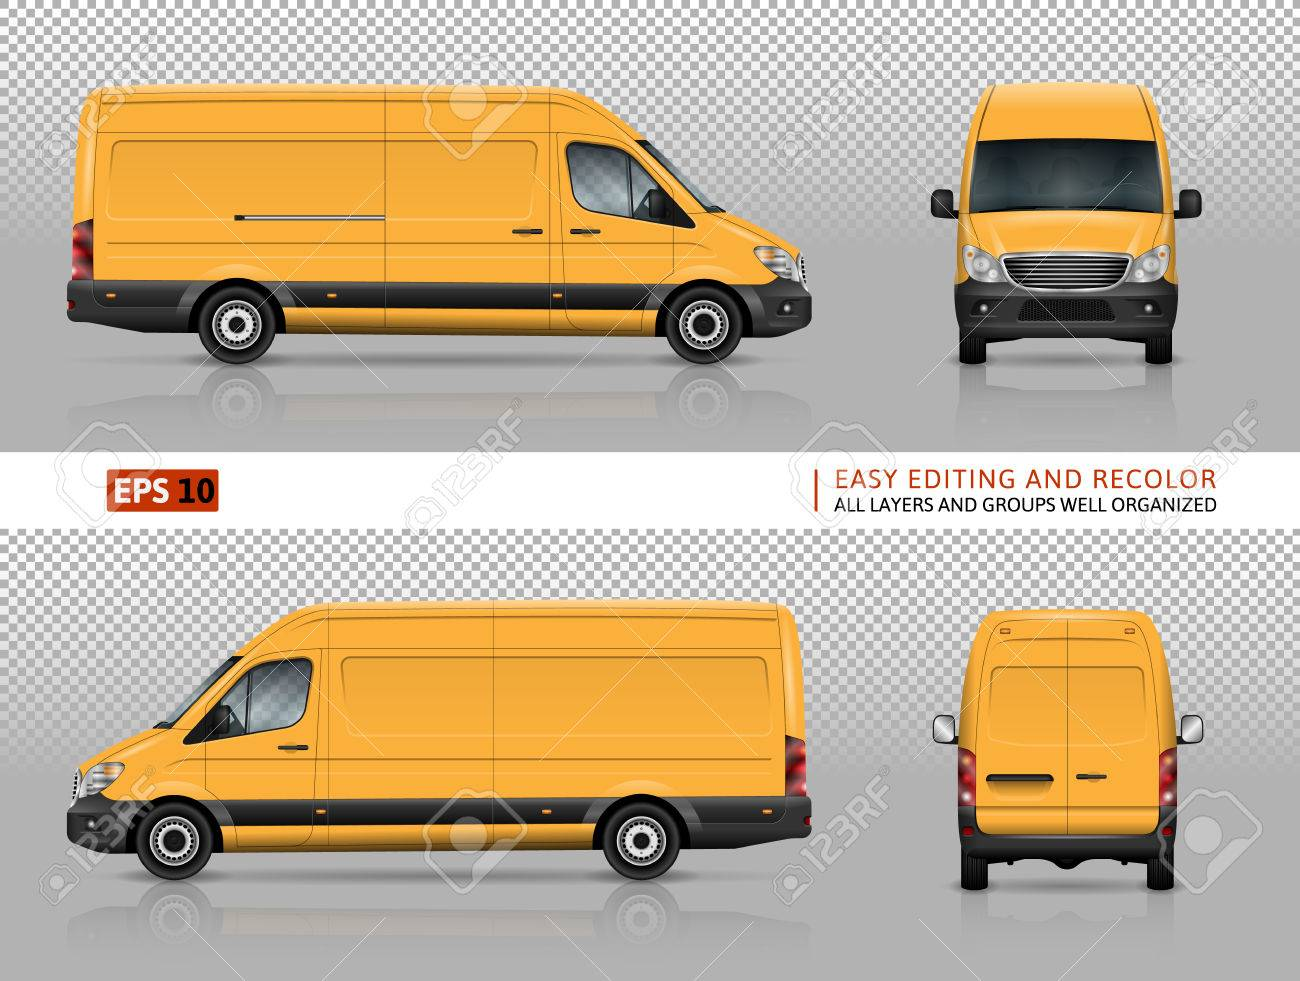 d6f20e1519e6 Vector - Yellow van vector template for car branding and advertising.  Isolated commercial truck on transparent background. View from left and  right side